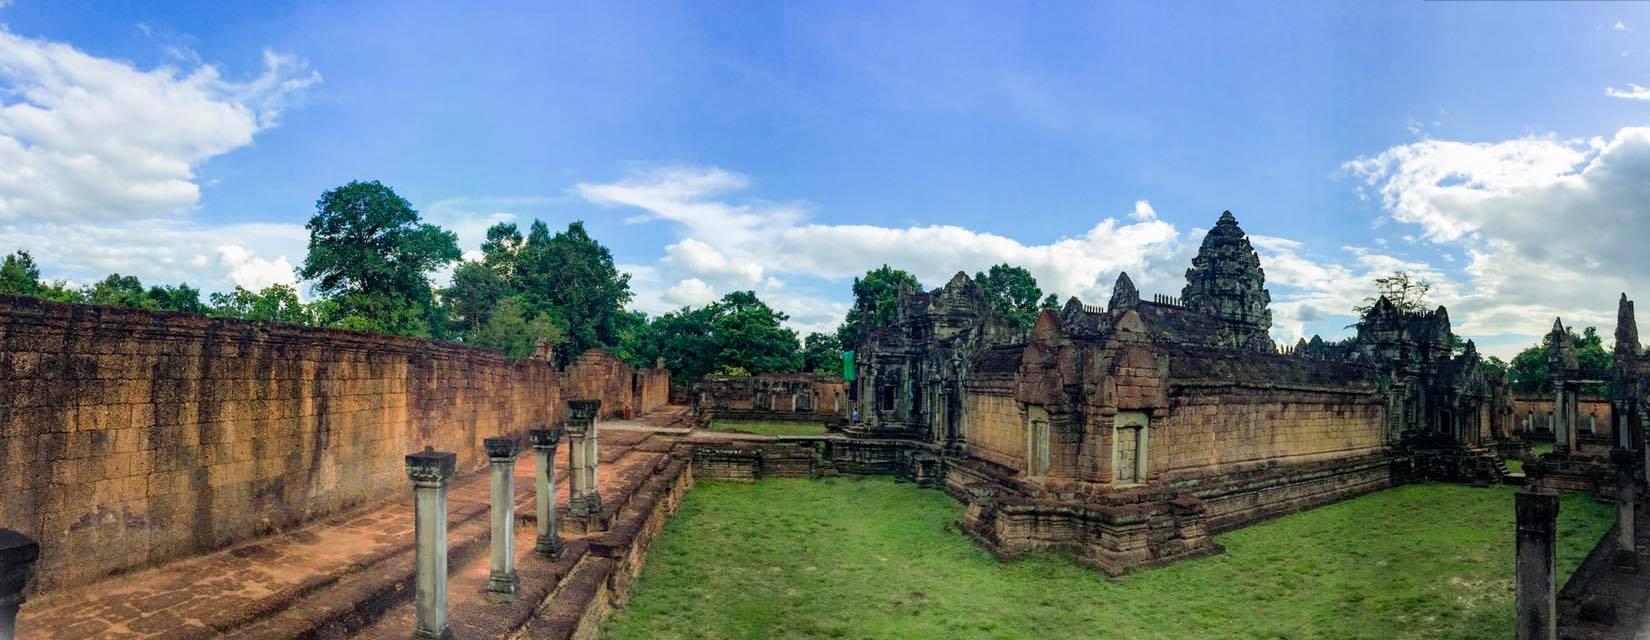 BANTEAY SAMRE – EXPLORING THIS UNDERRATED KHMER TEMPLE